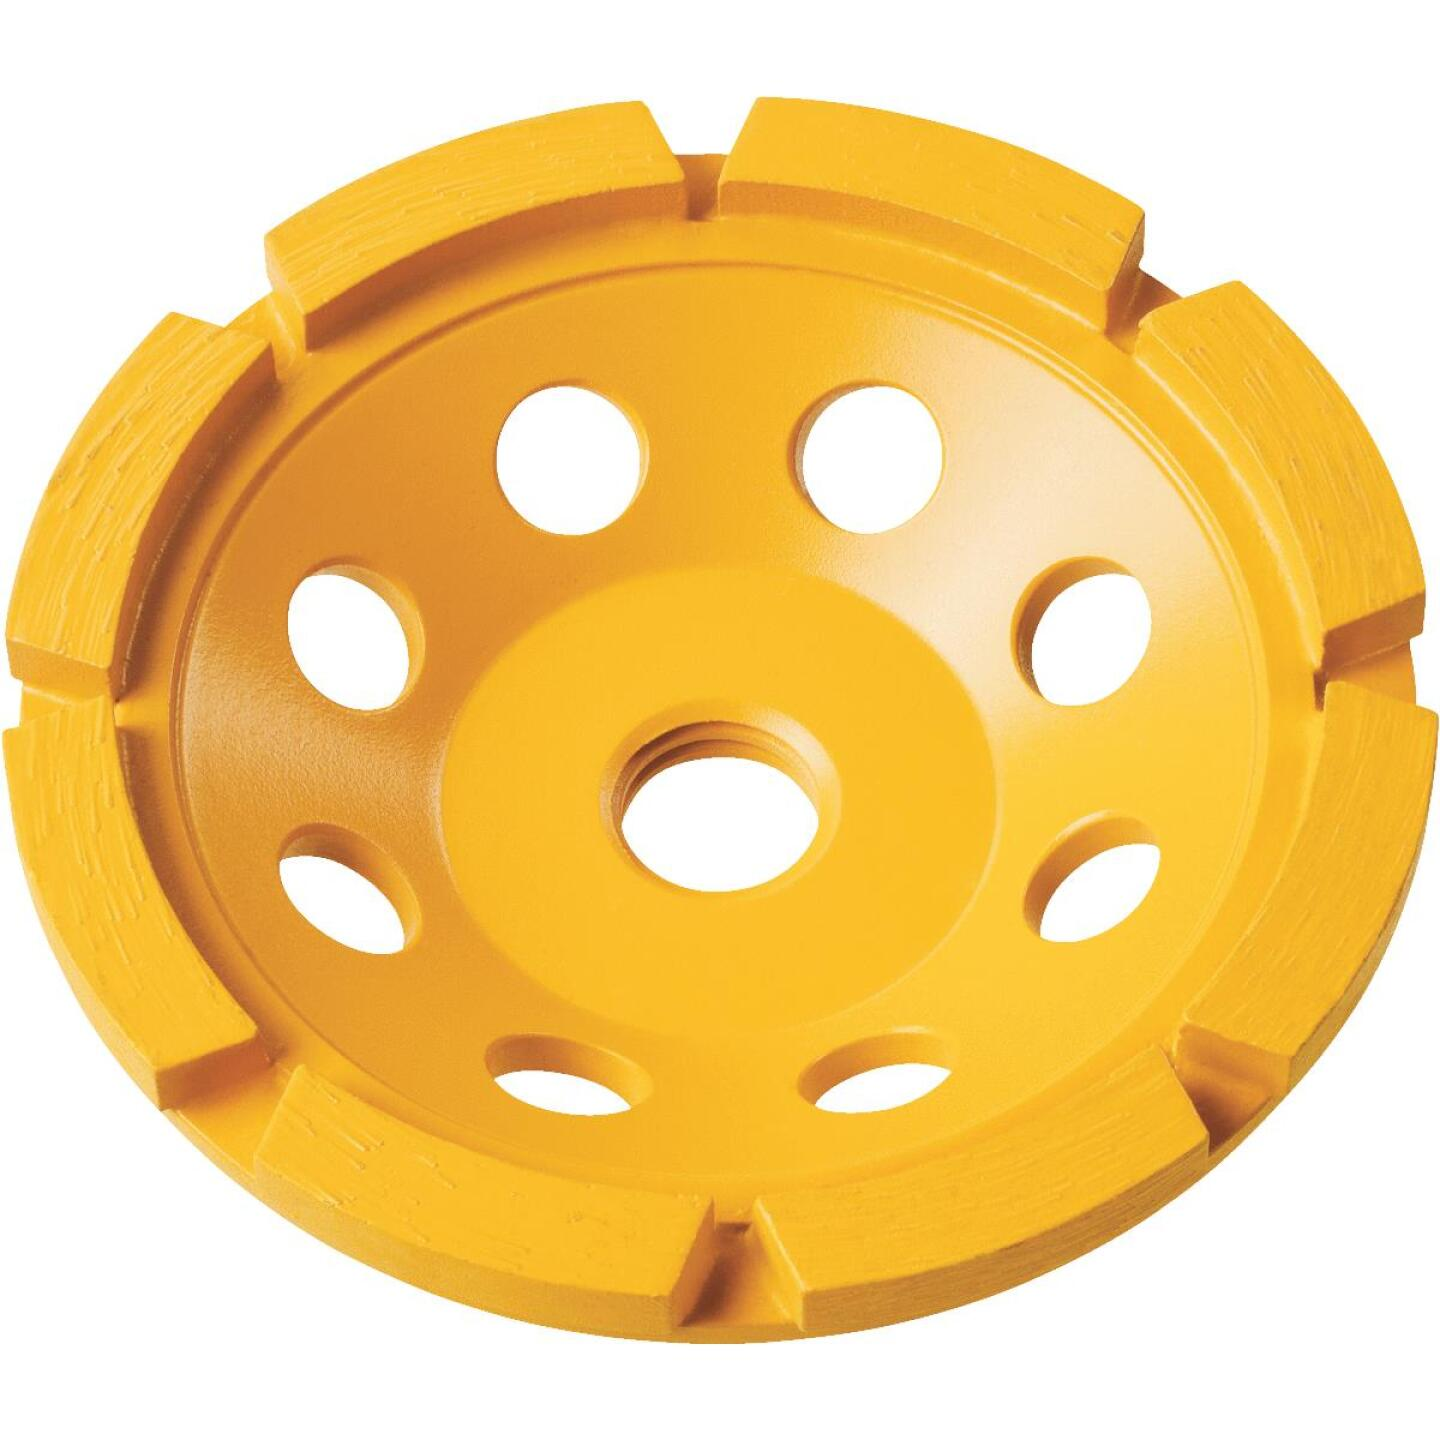 DeWalt 4 In. Segmented Single Row Masonry Cup Wheel Image 1